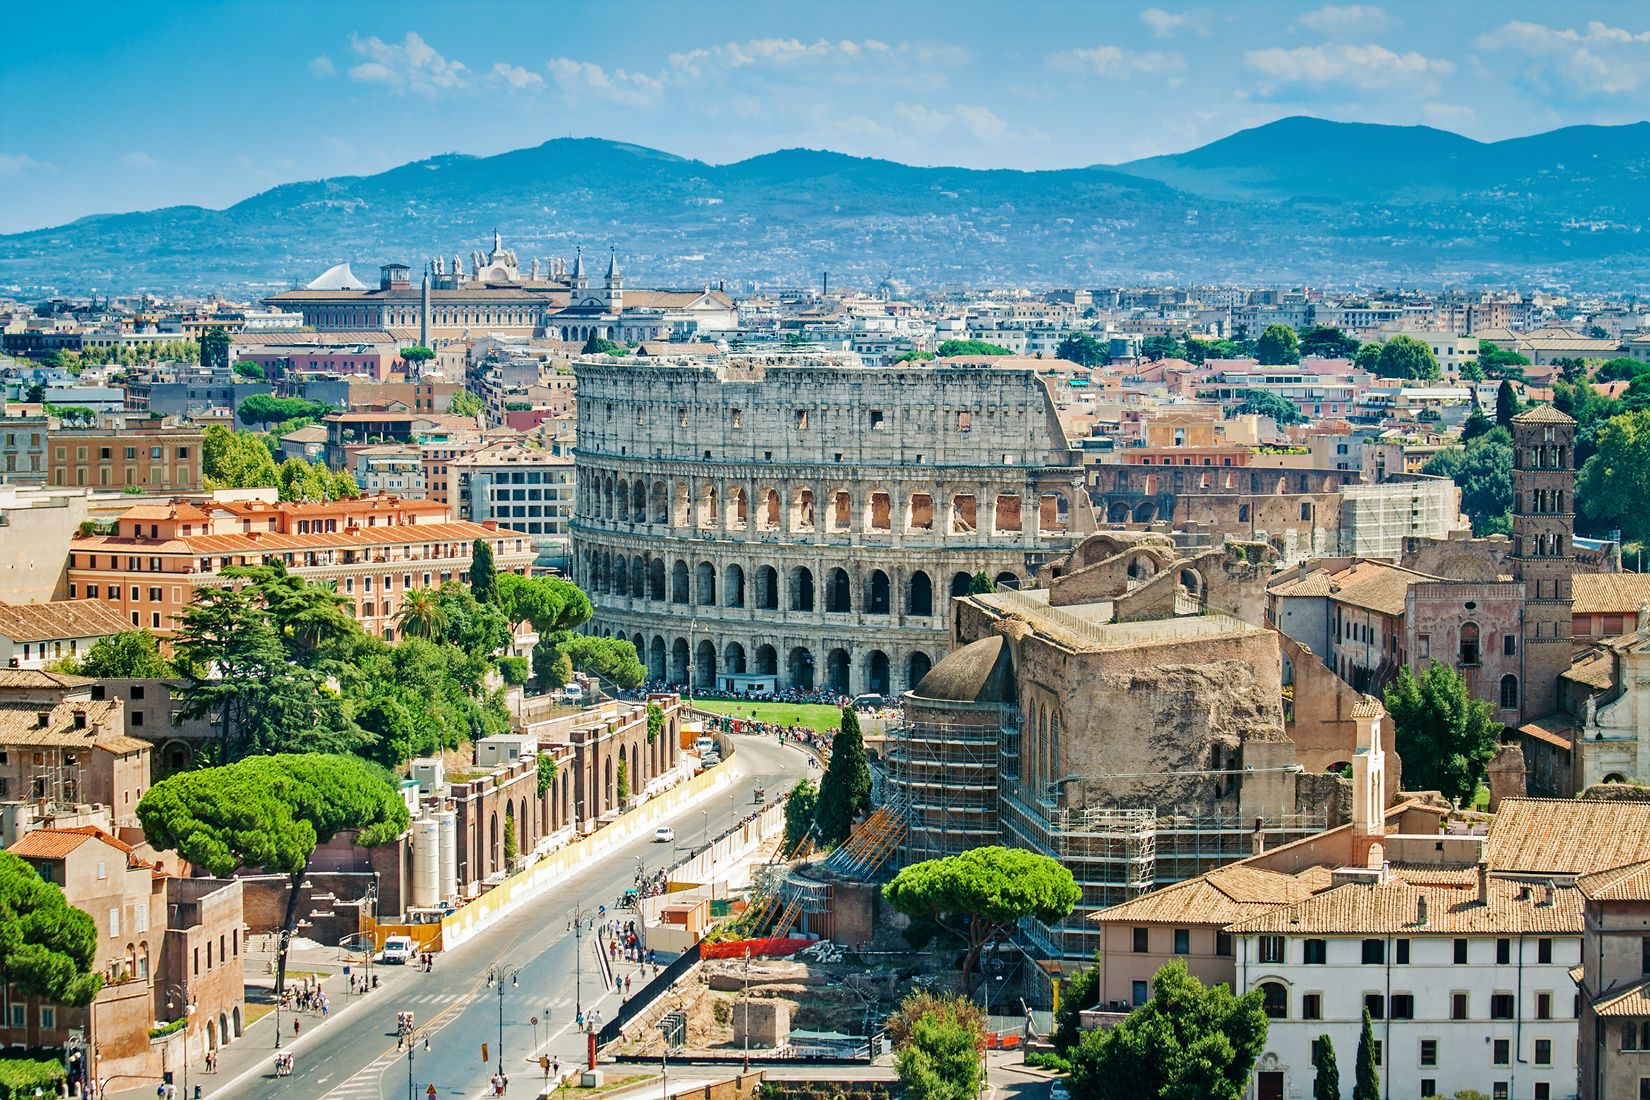 colosseo panoramica montagne shutterstock_319443518.jpg